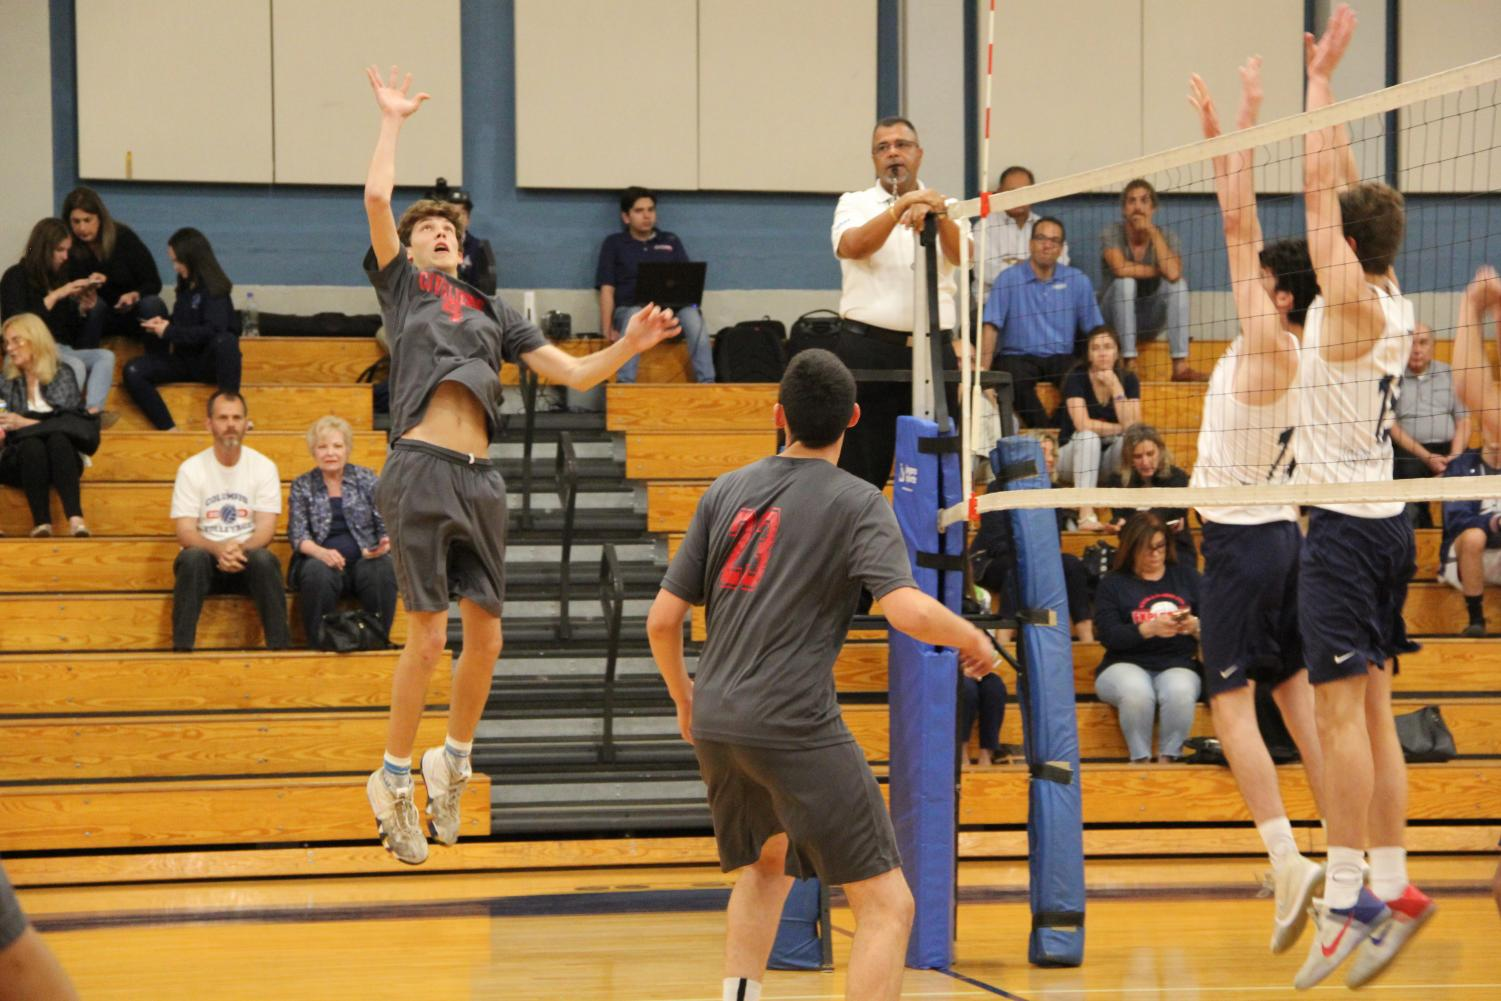 Senior Matthew Wagner leaps in the air, preparing to strike the ball, as two Explorers aim to defend his hit.